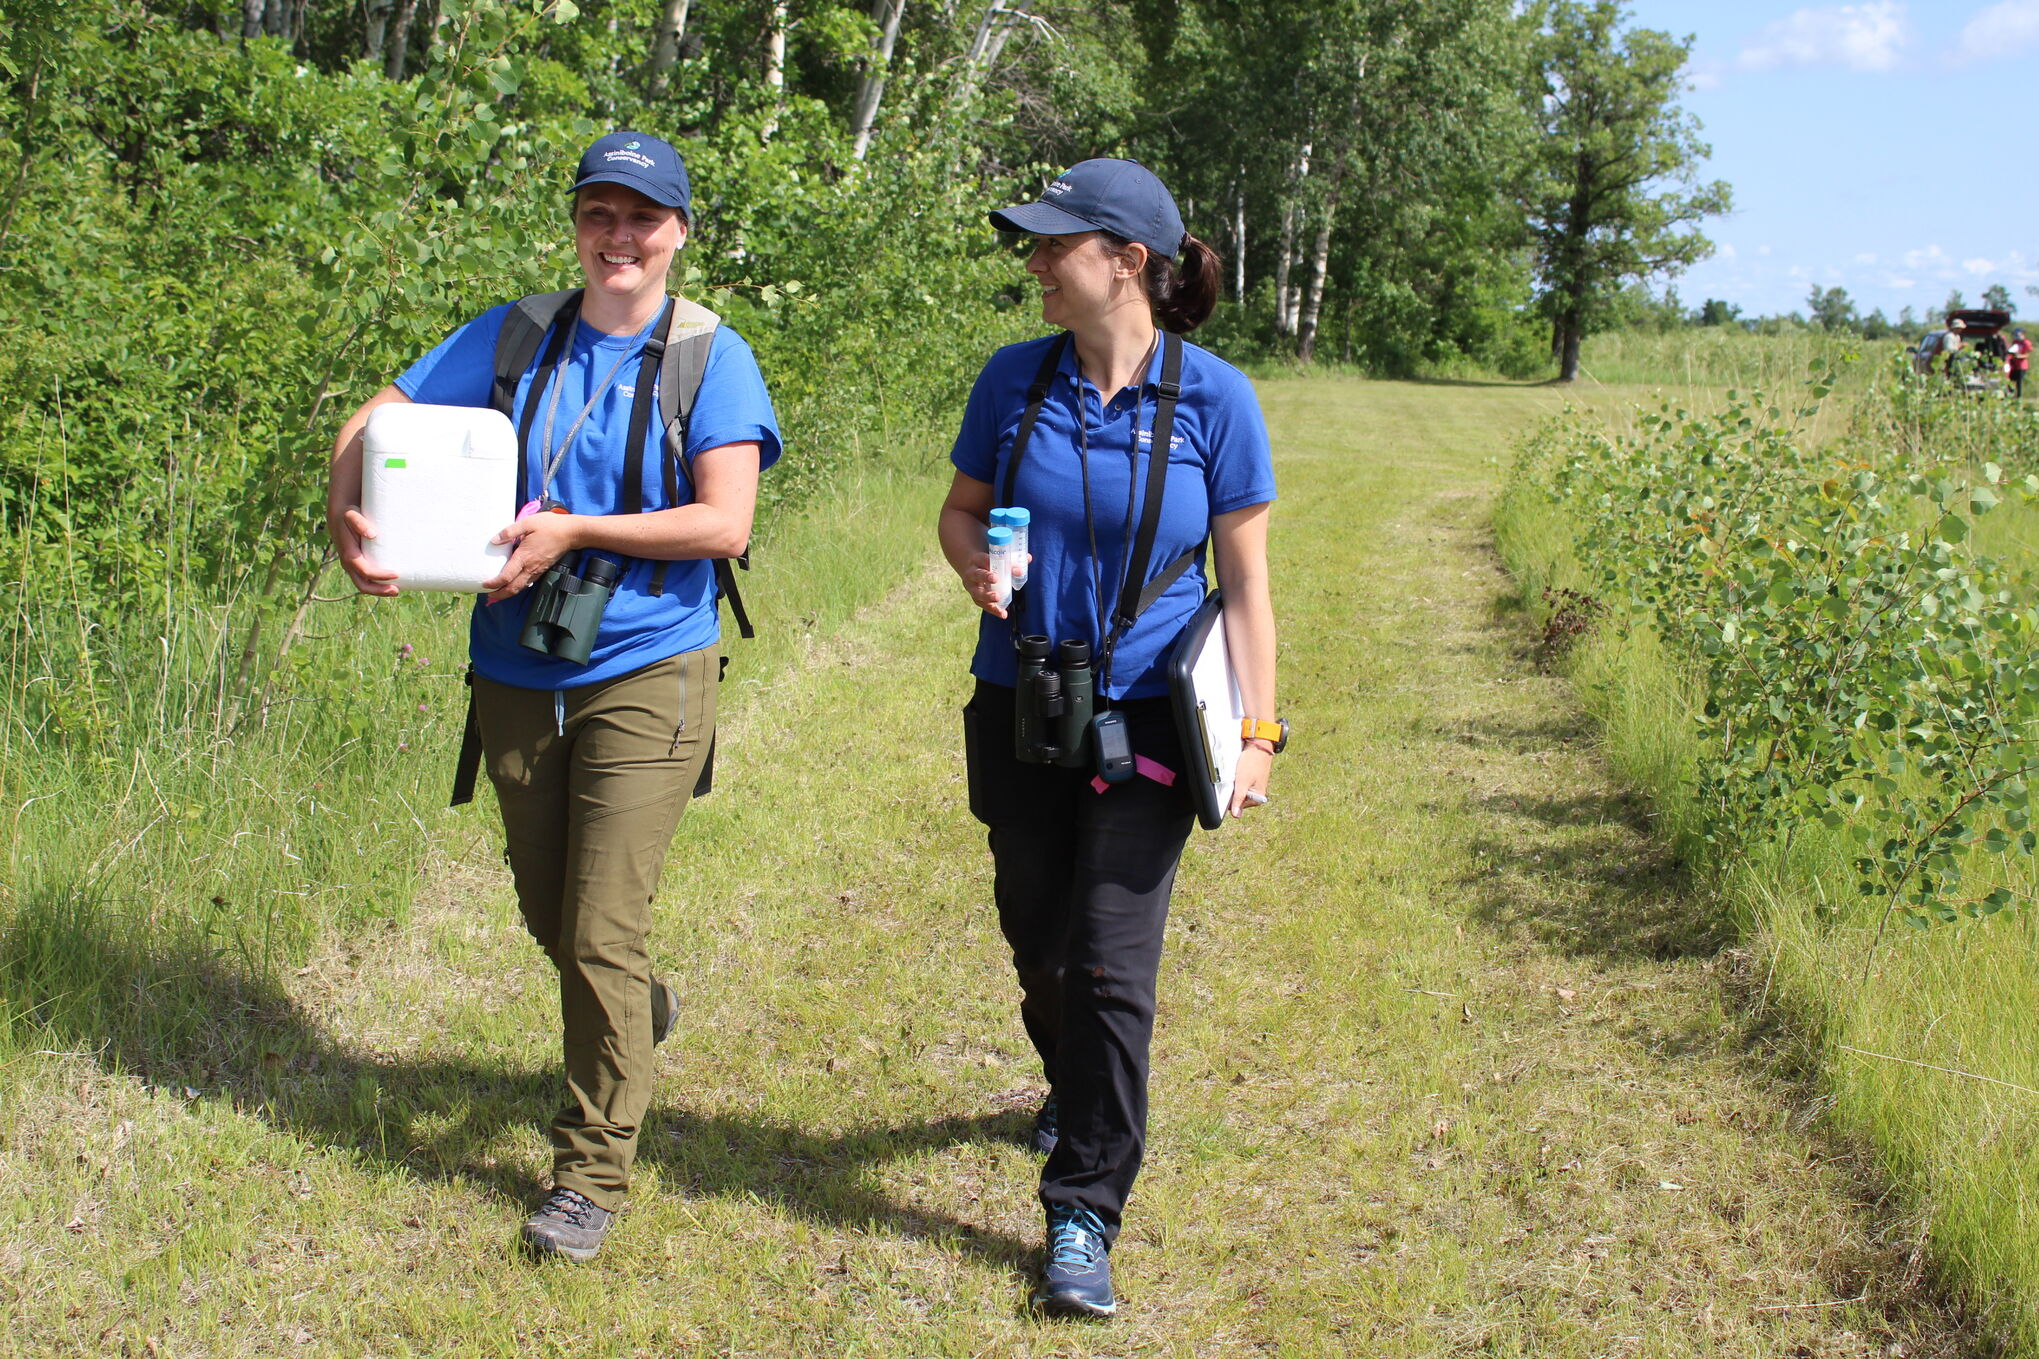 C-Jae Breiter and Laura Burns carry a Stryofoam cooler and other equipment out to the preserve last Thursday.